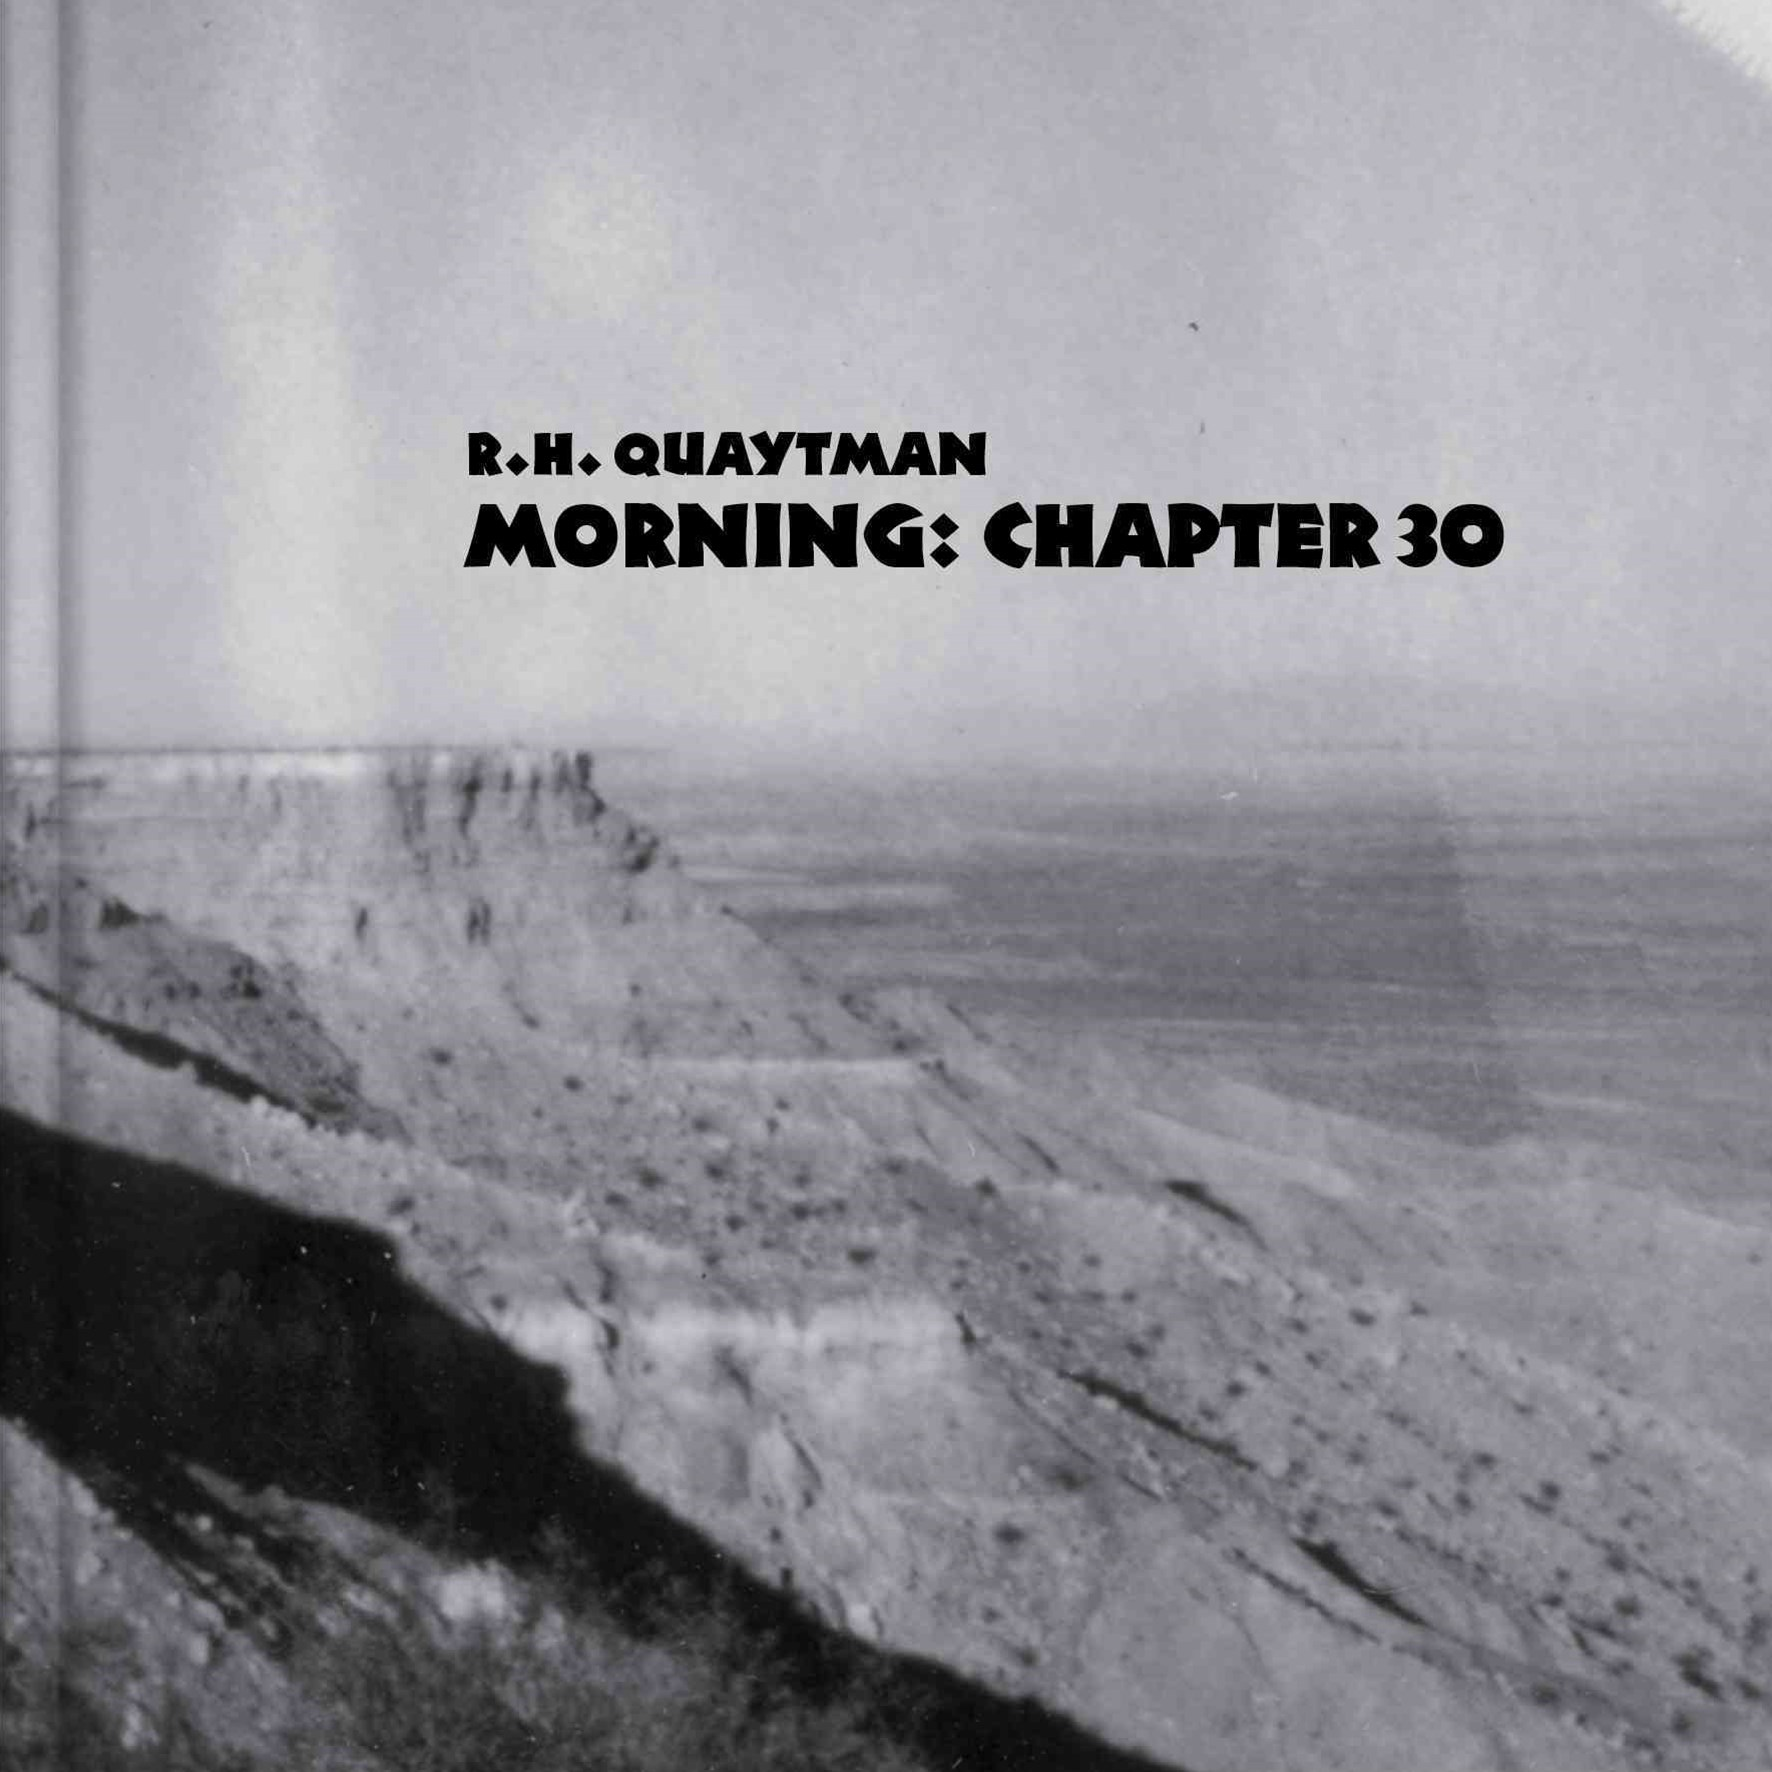 R. H. Quaytman: Morning Chapter 30